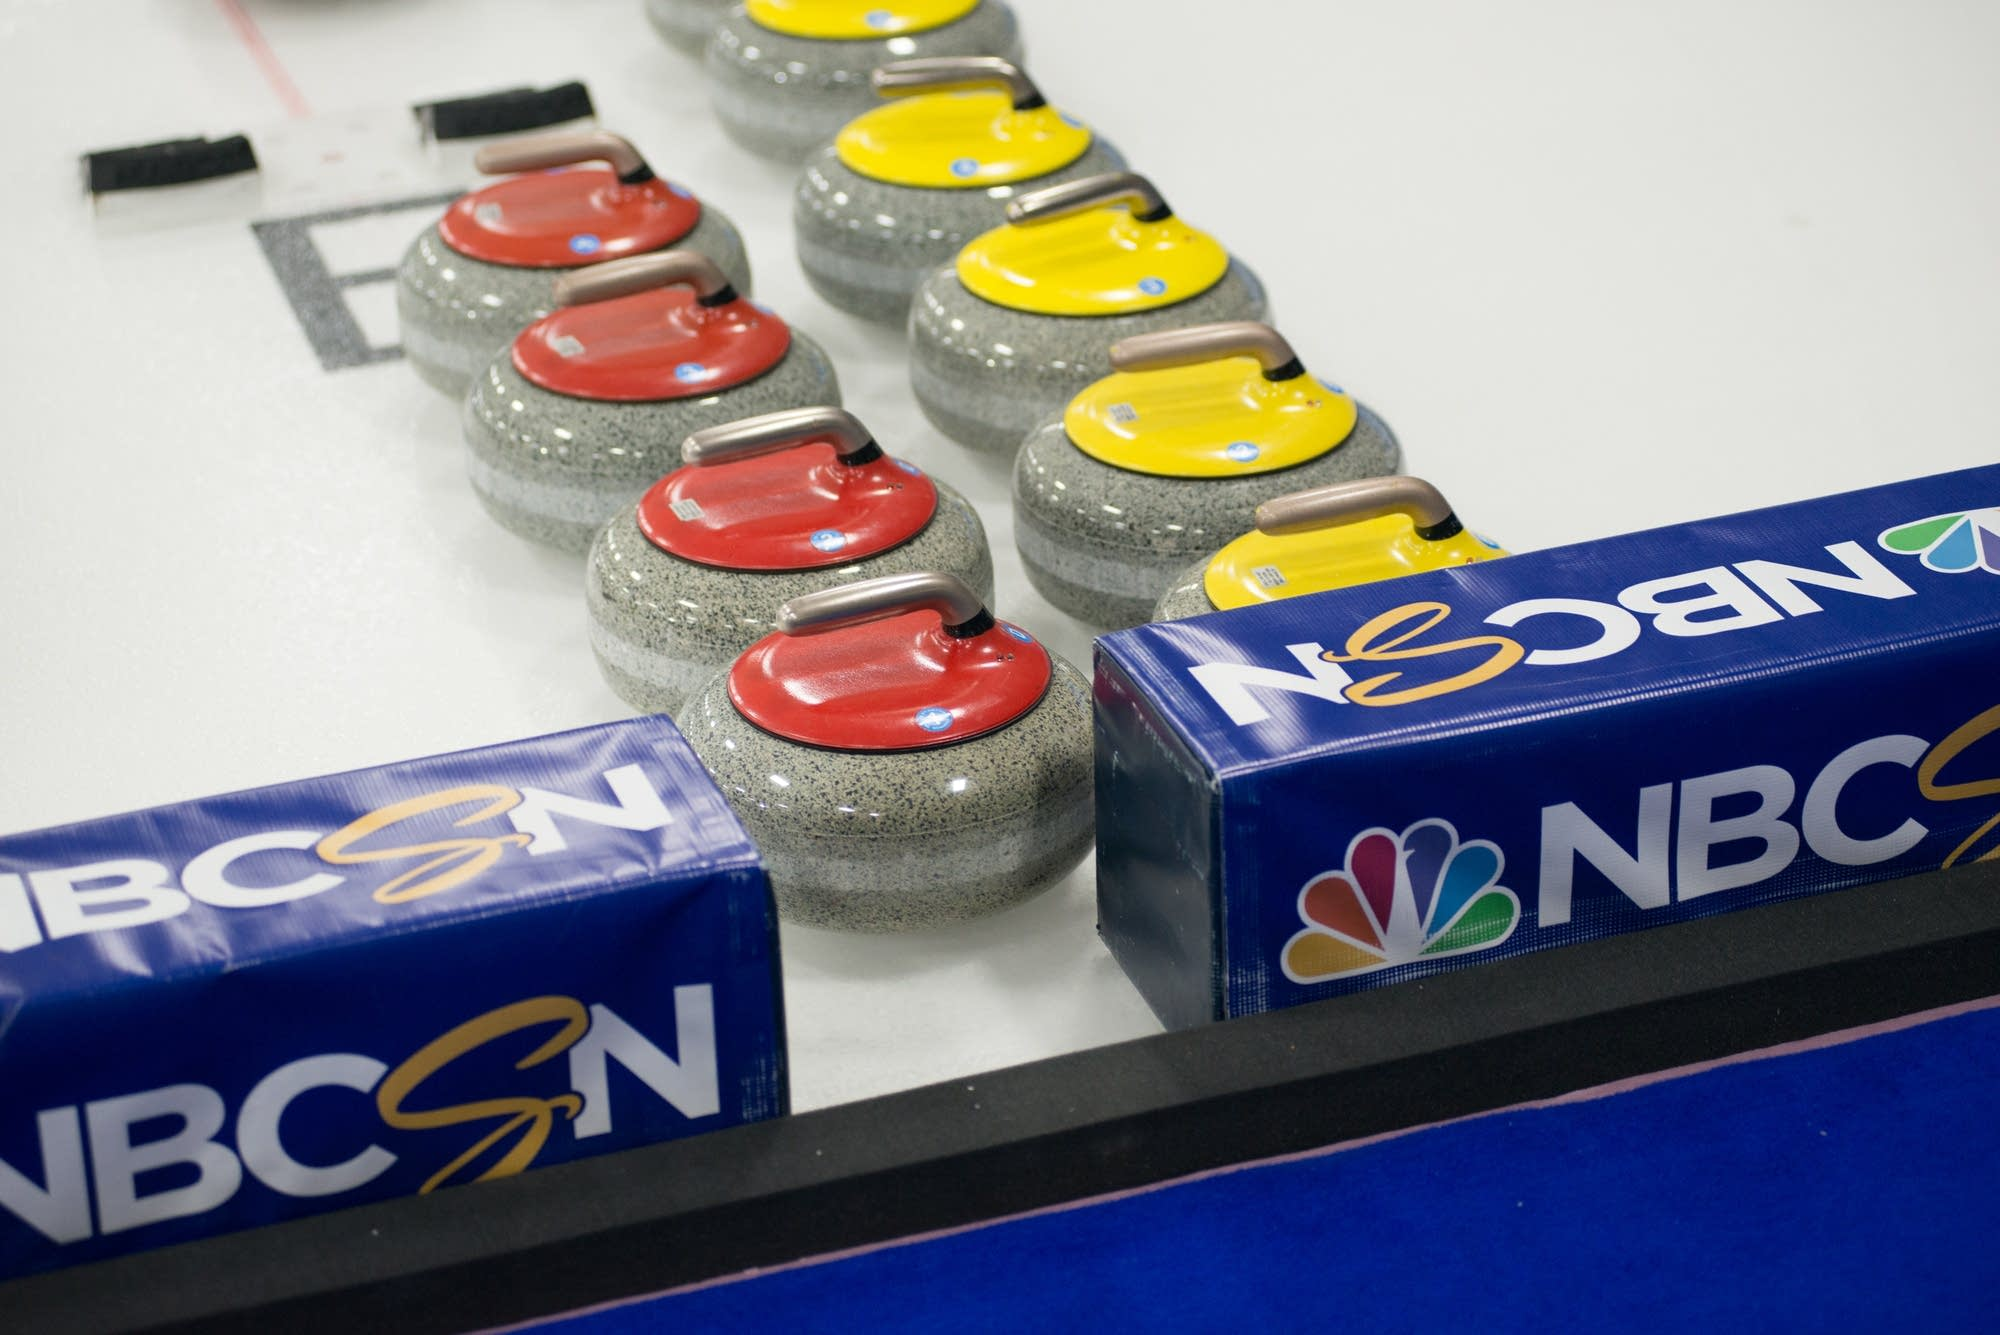 Extra curling stones are on standby during the Olympic trials.